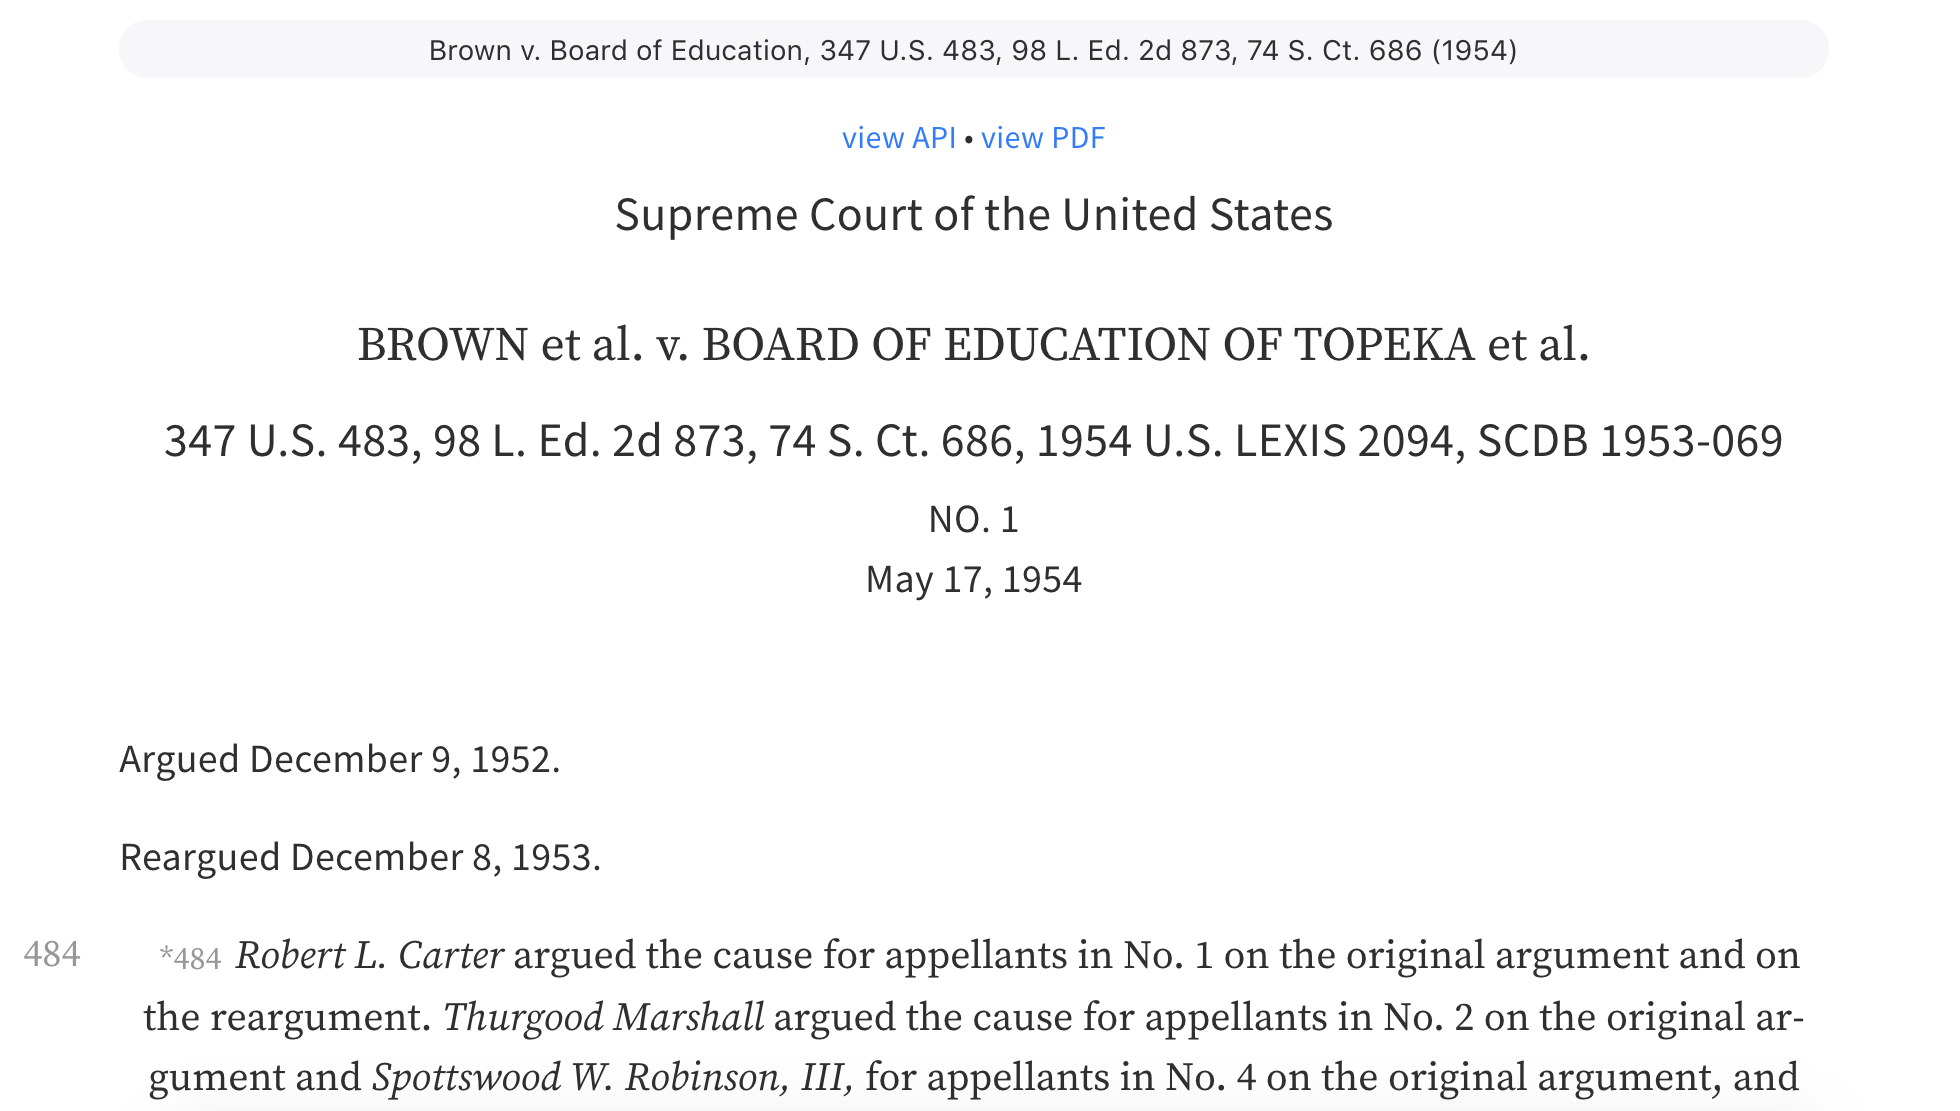 Brown v. Board of Education, 347 U.S. 483, 98 L. Ed. 2d 873, 74 S. Ct. 686 (1954)